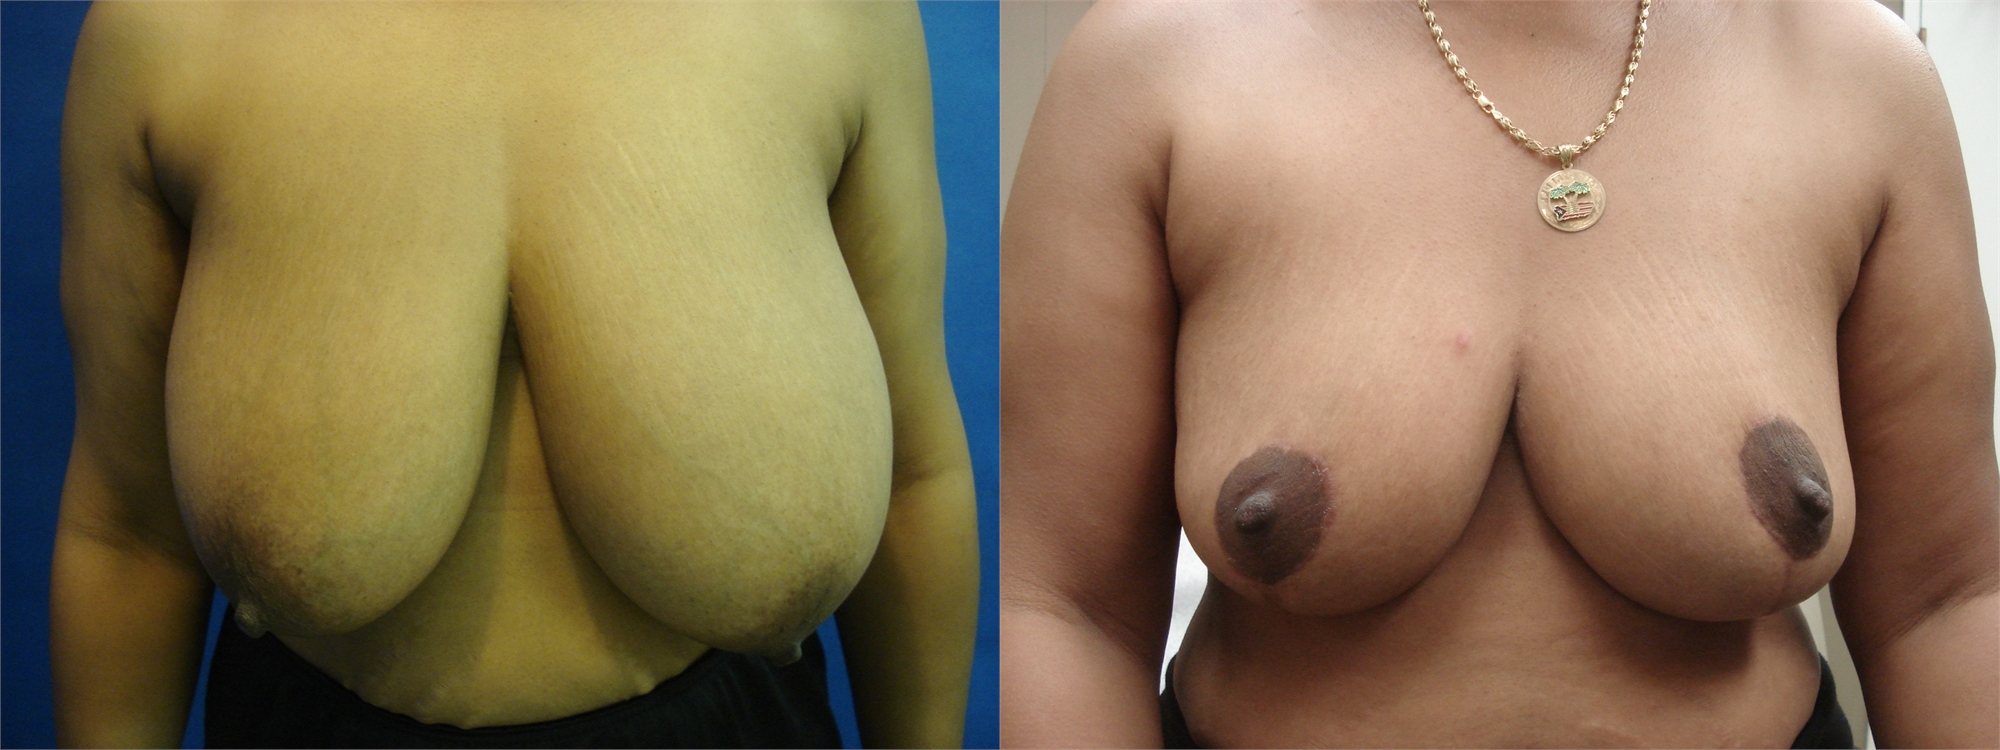 Breast Lift Before and After Surgery Tacoma, WA